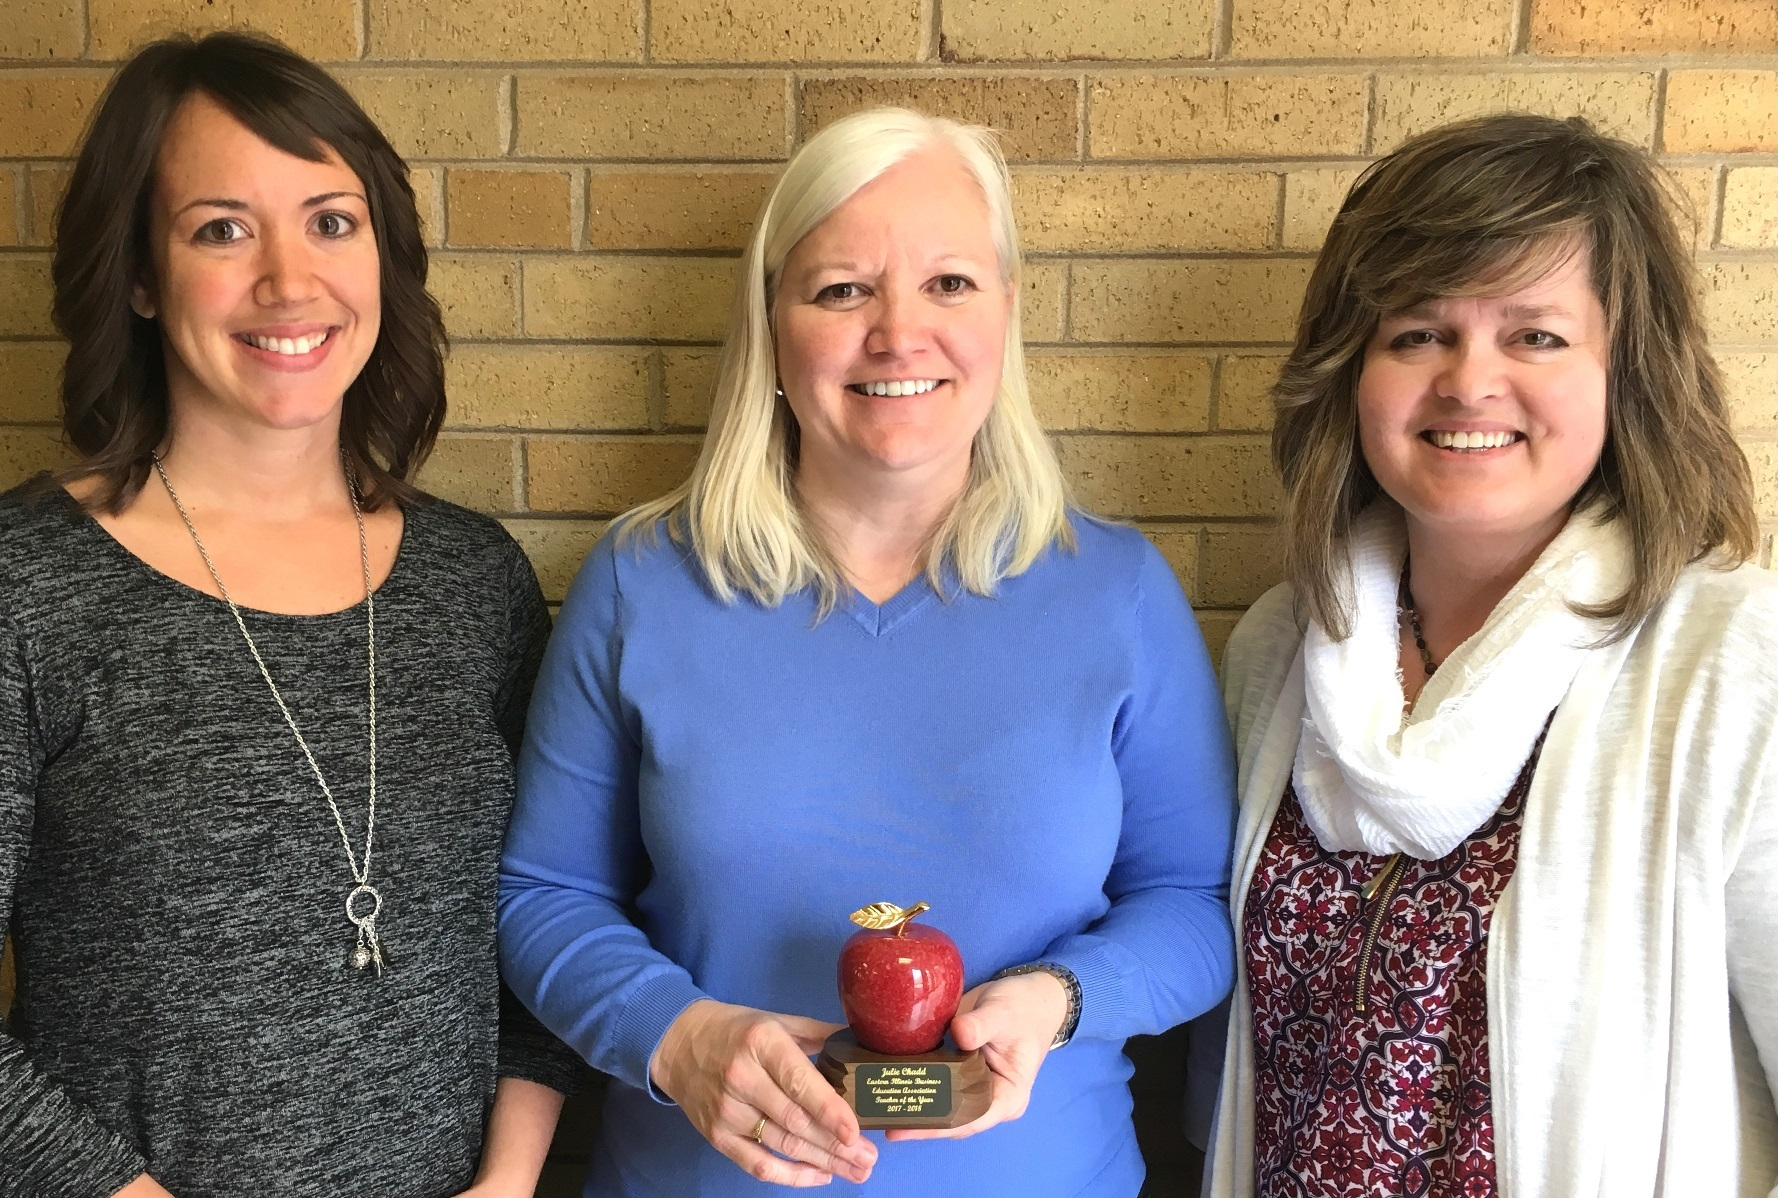 EIU's Chadd earns EIBEA Teacher of the Year award